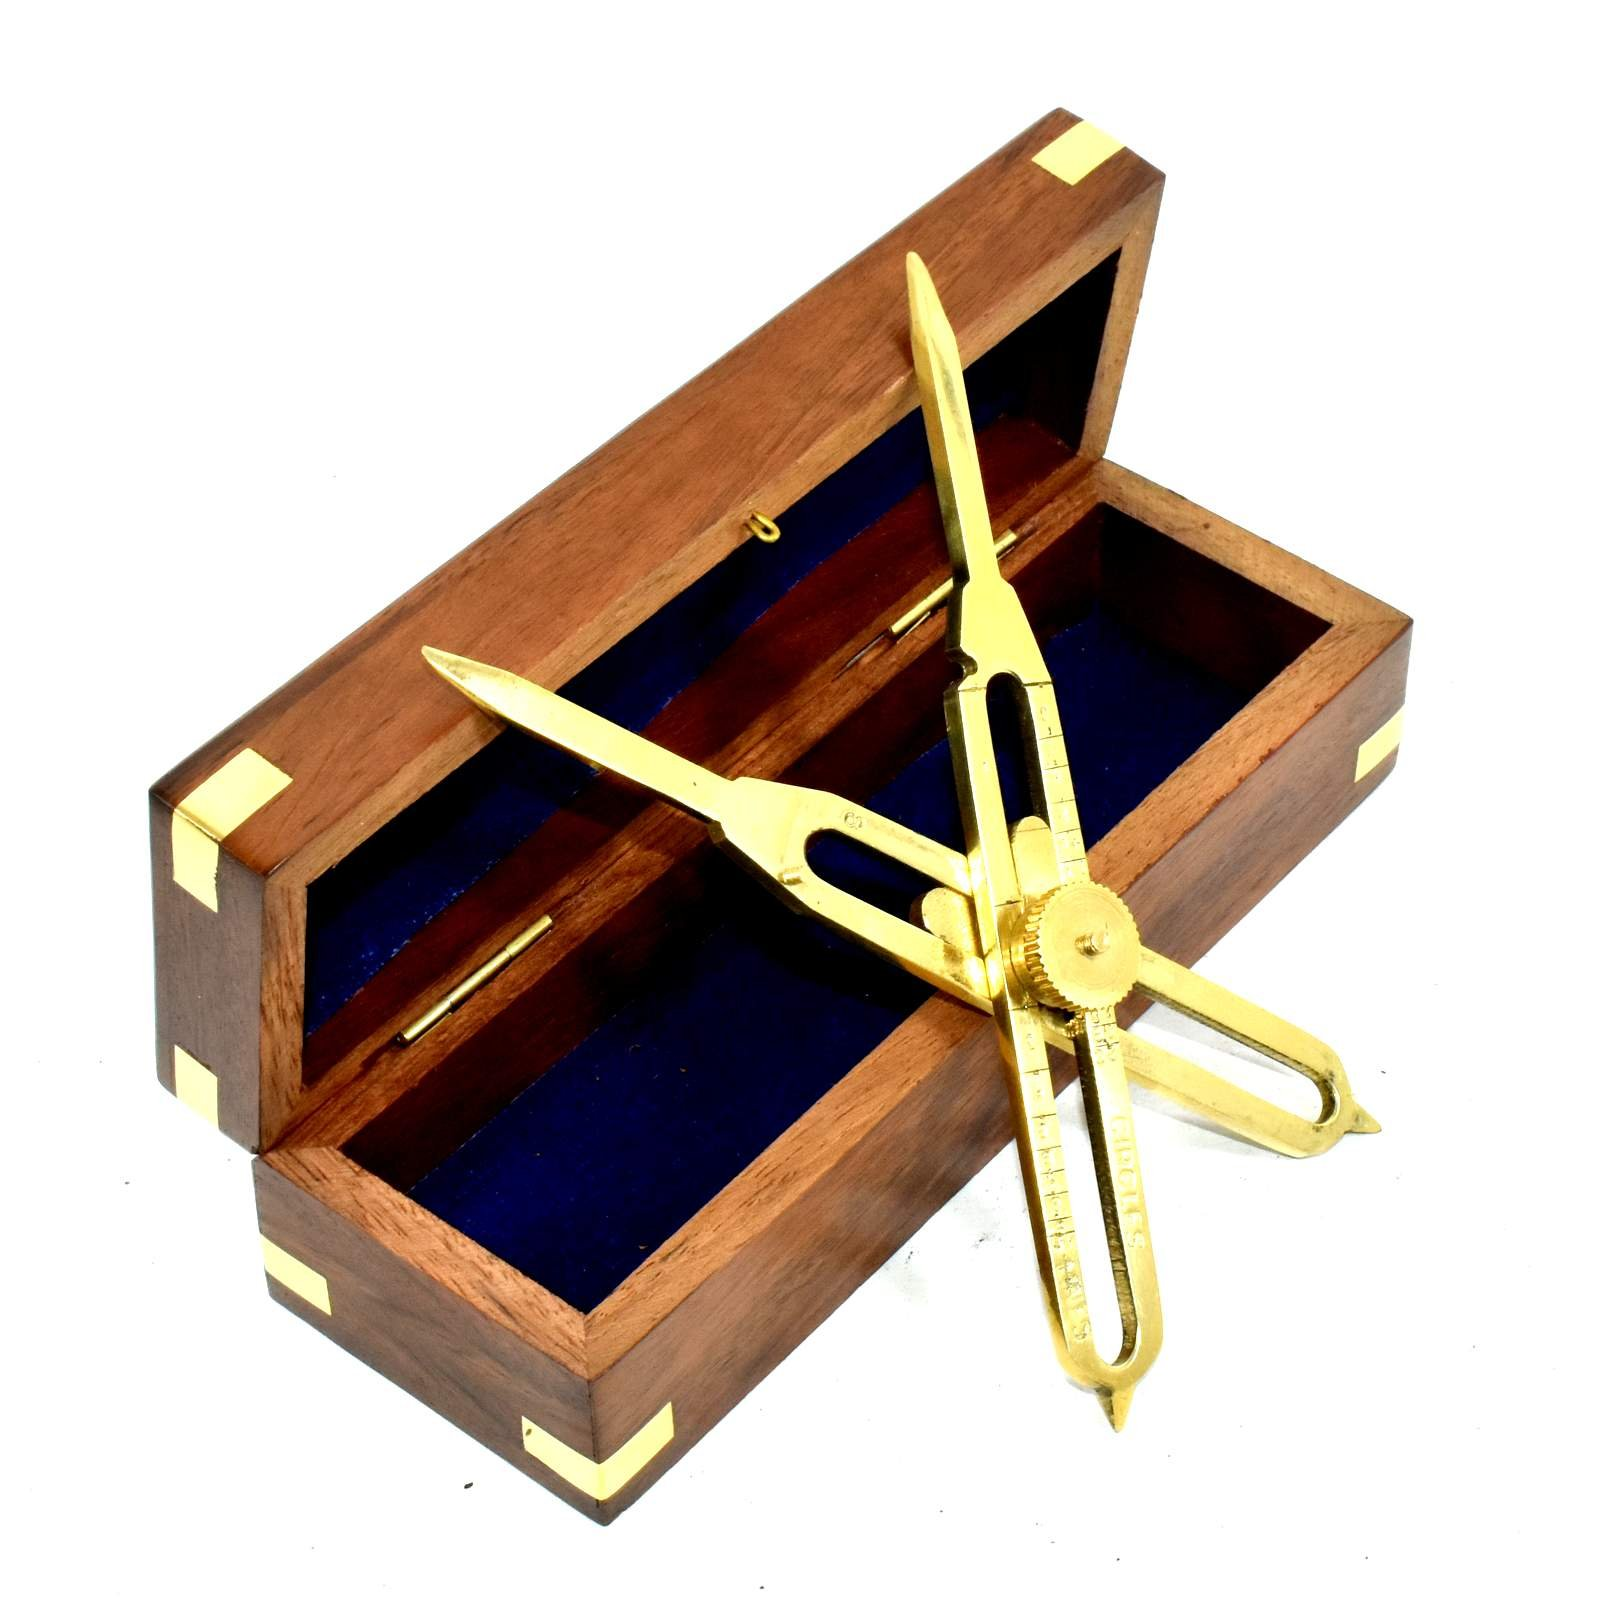 Solid-Brass-Proportional-Divider-6-inch-with-Anchor-Inlaid-Box by Eve.Store